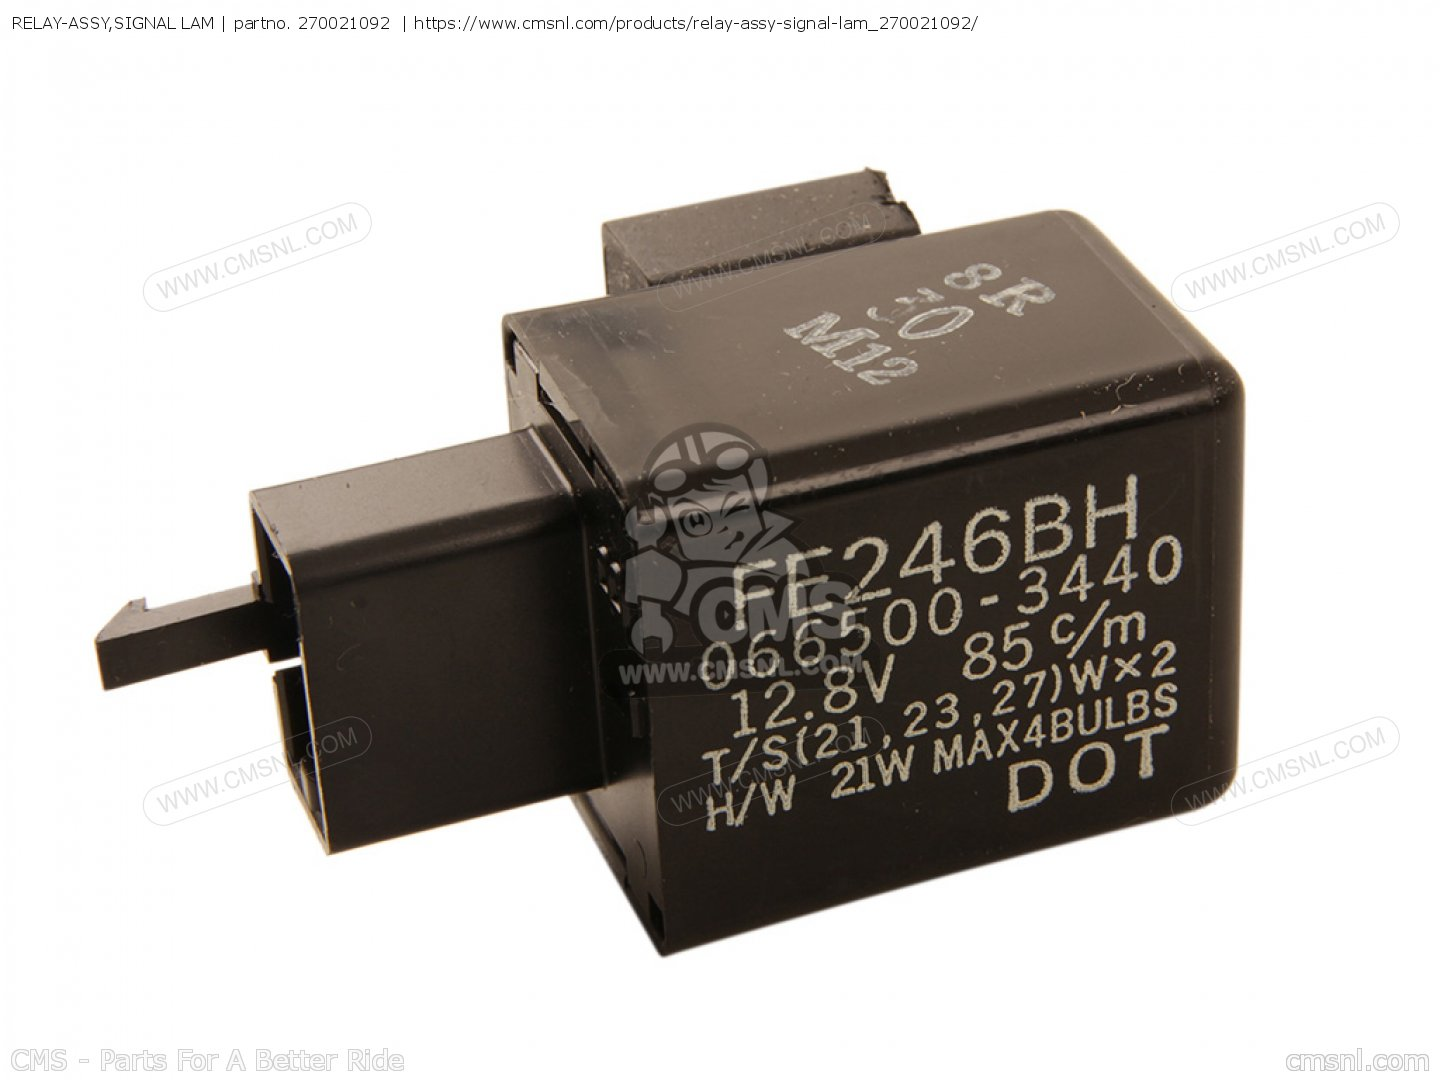 Relay Assysignal Lam Fits Vn1500d2 Vn1500 Classic 1997 Euro Uk Fr Electrical Assy Signal Photo